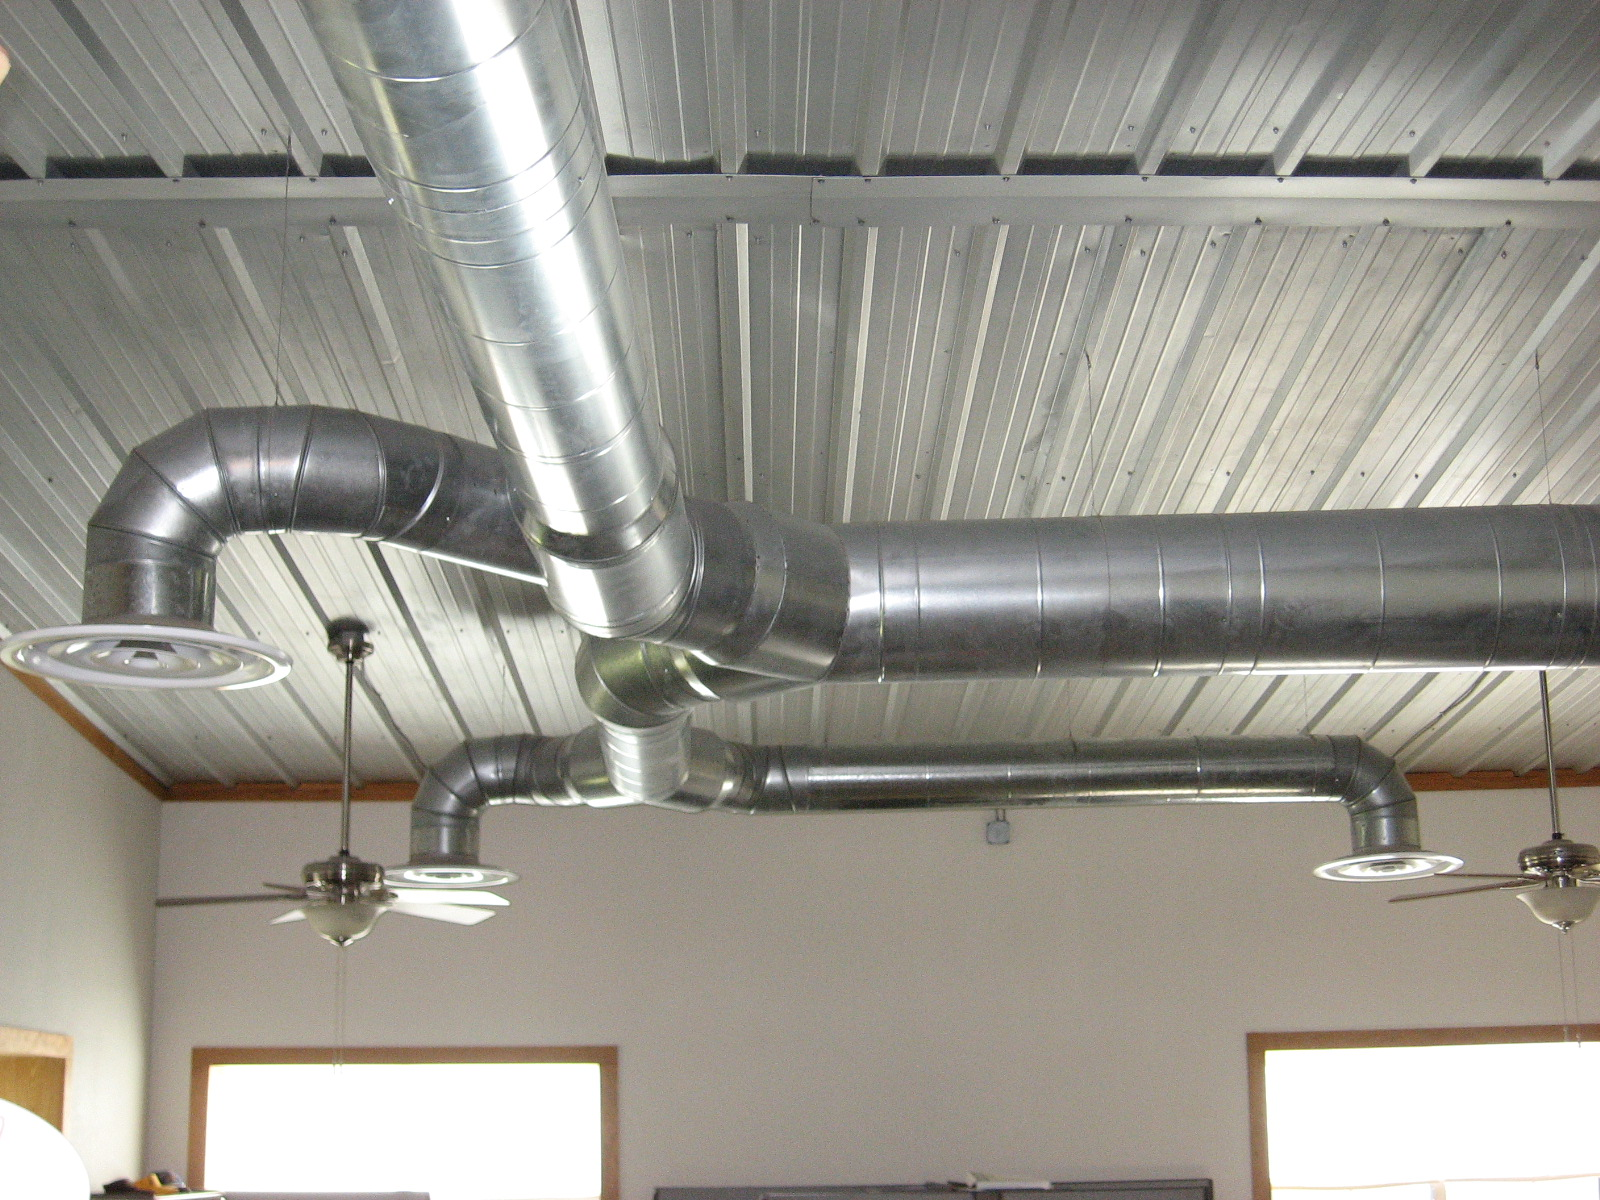 duct sizing and layout kramer engineering services